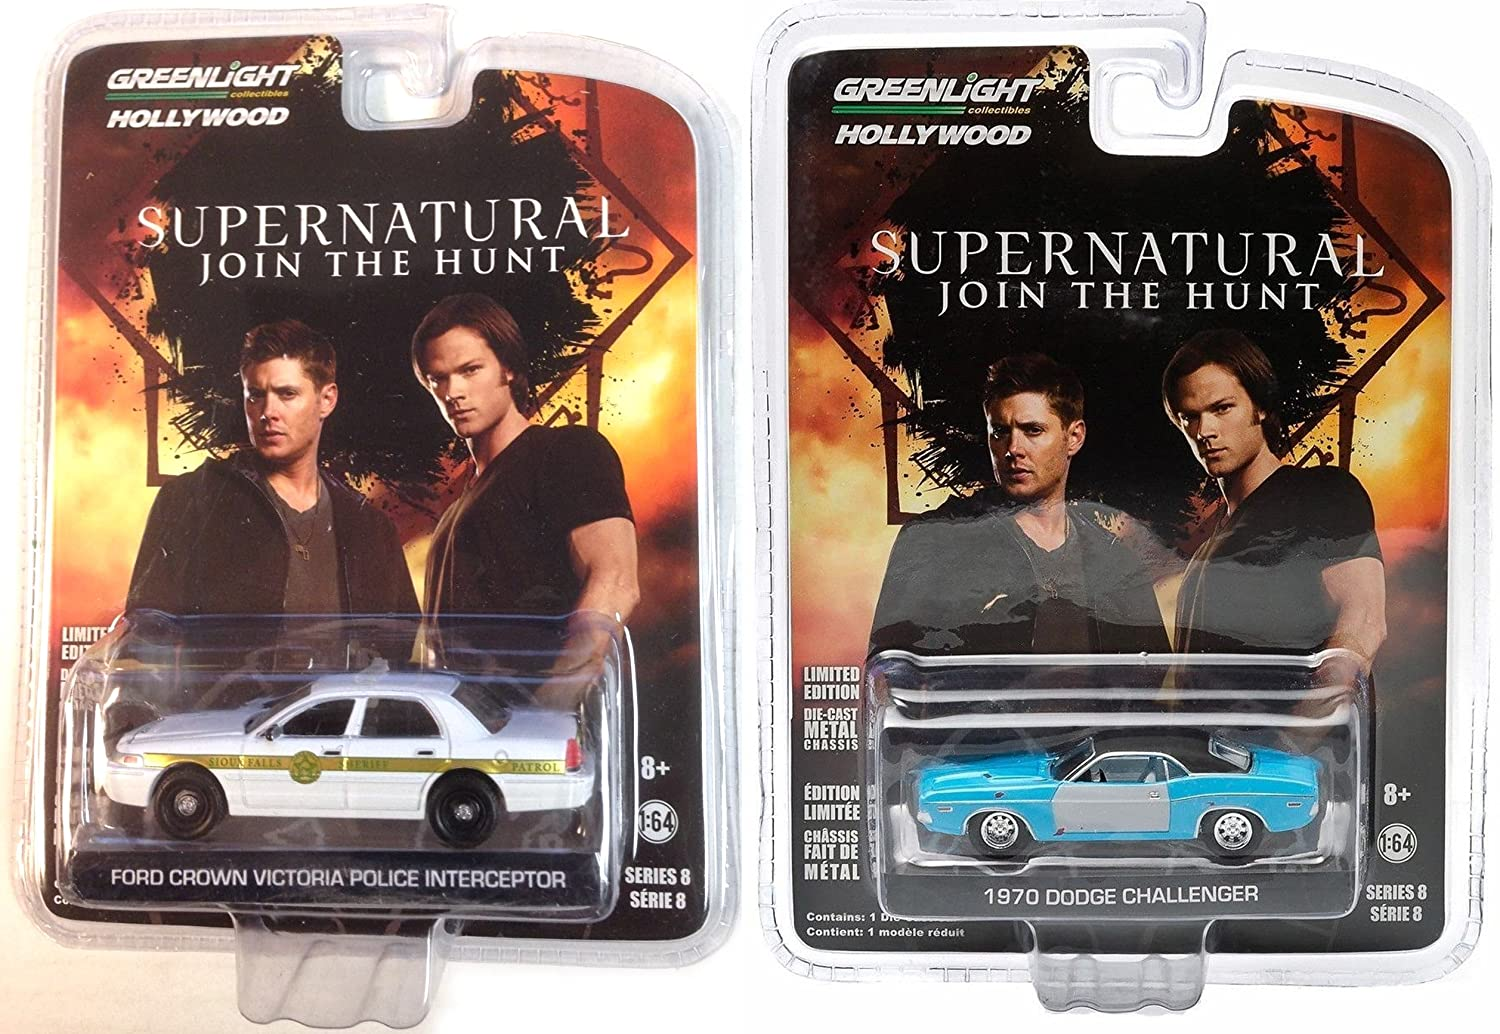 Supernatural Series 8 Tv Show 2 Car Set 1970 Dodge Ford Police Challenger Crown Vic Greenlight Hollywood Entertainment 164 Toys Games